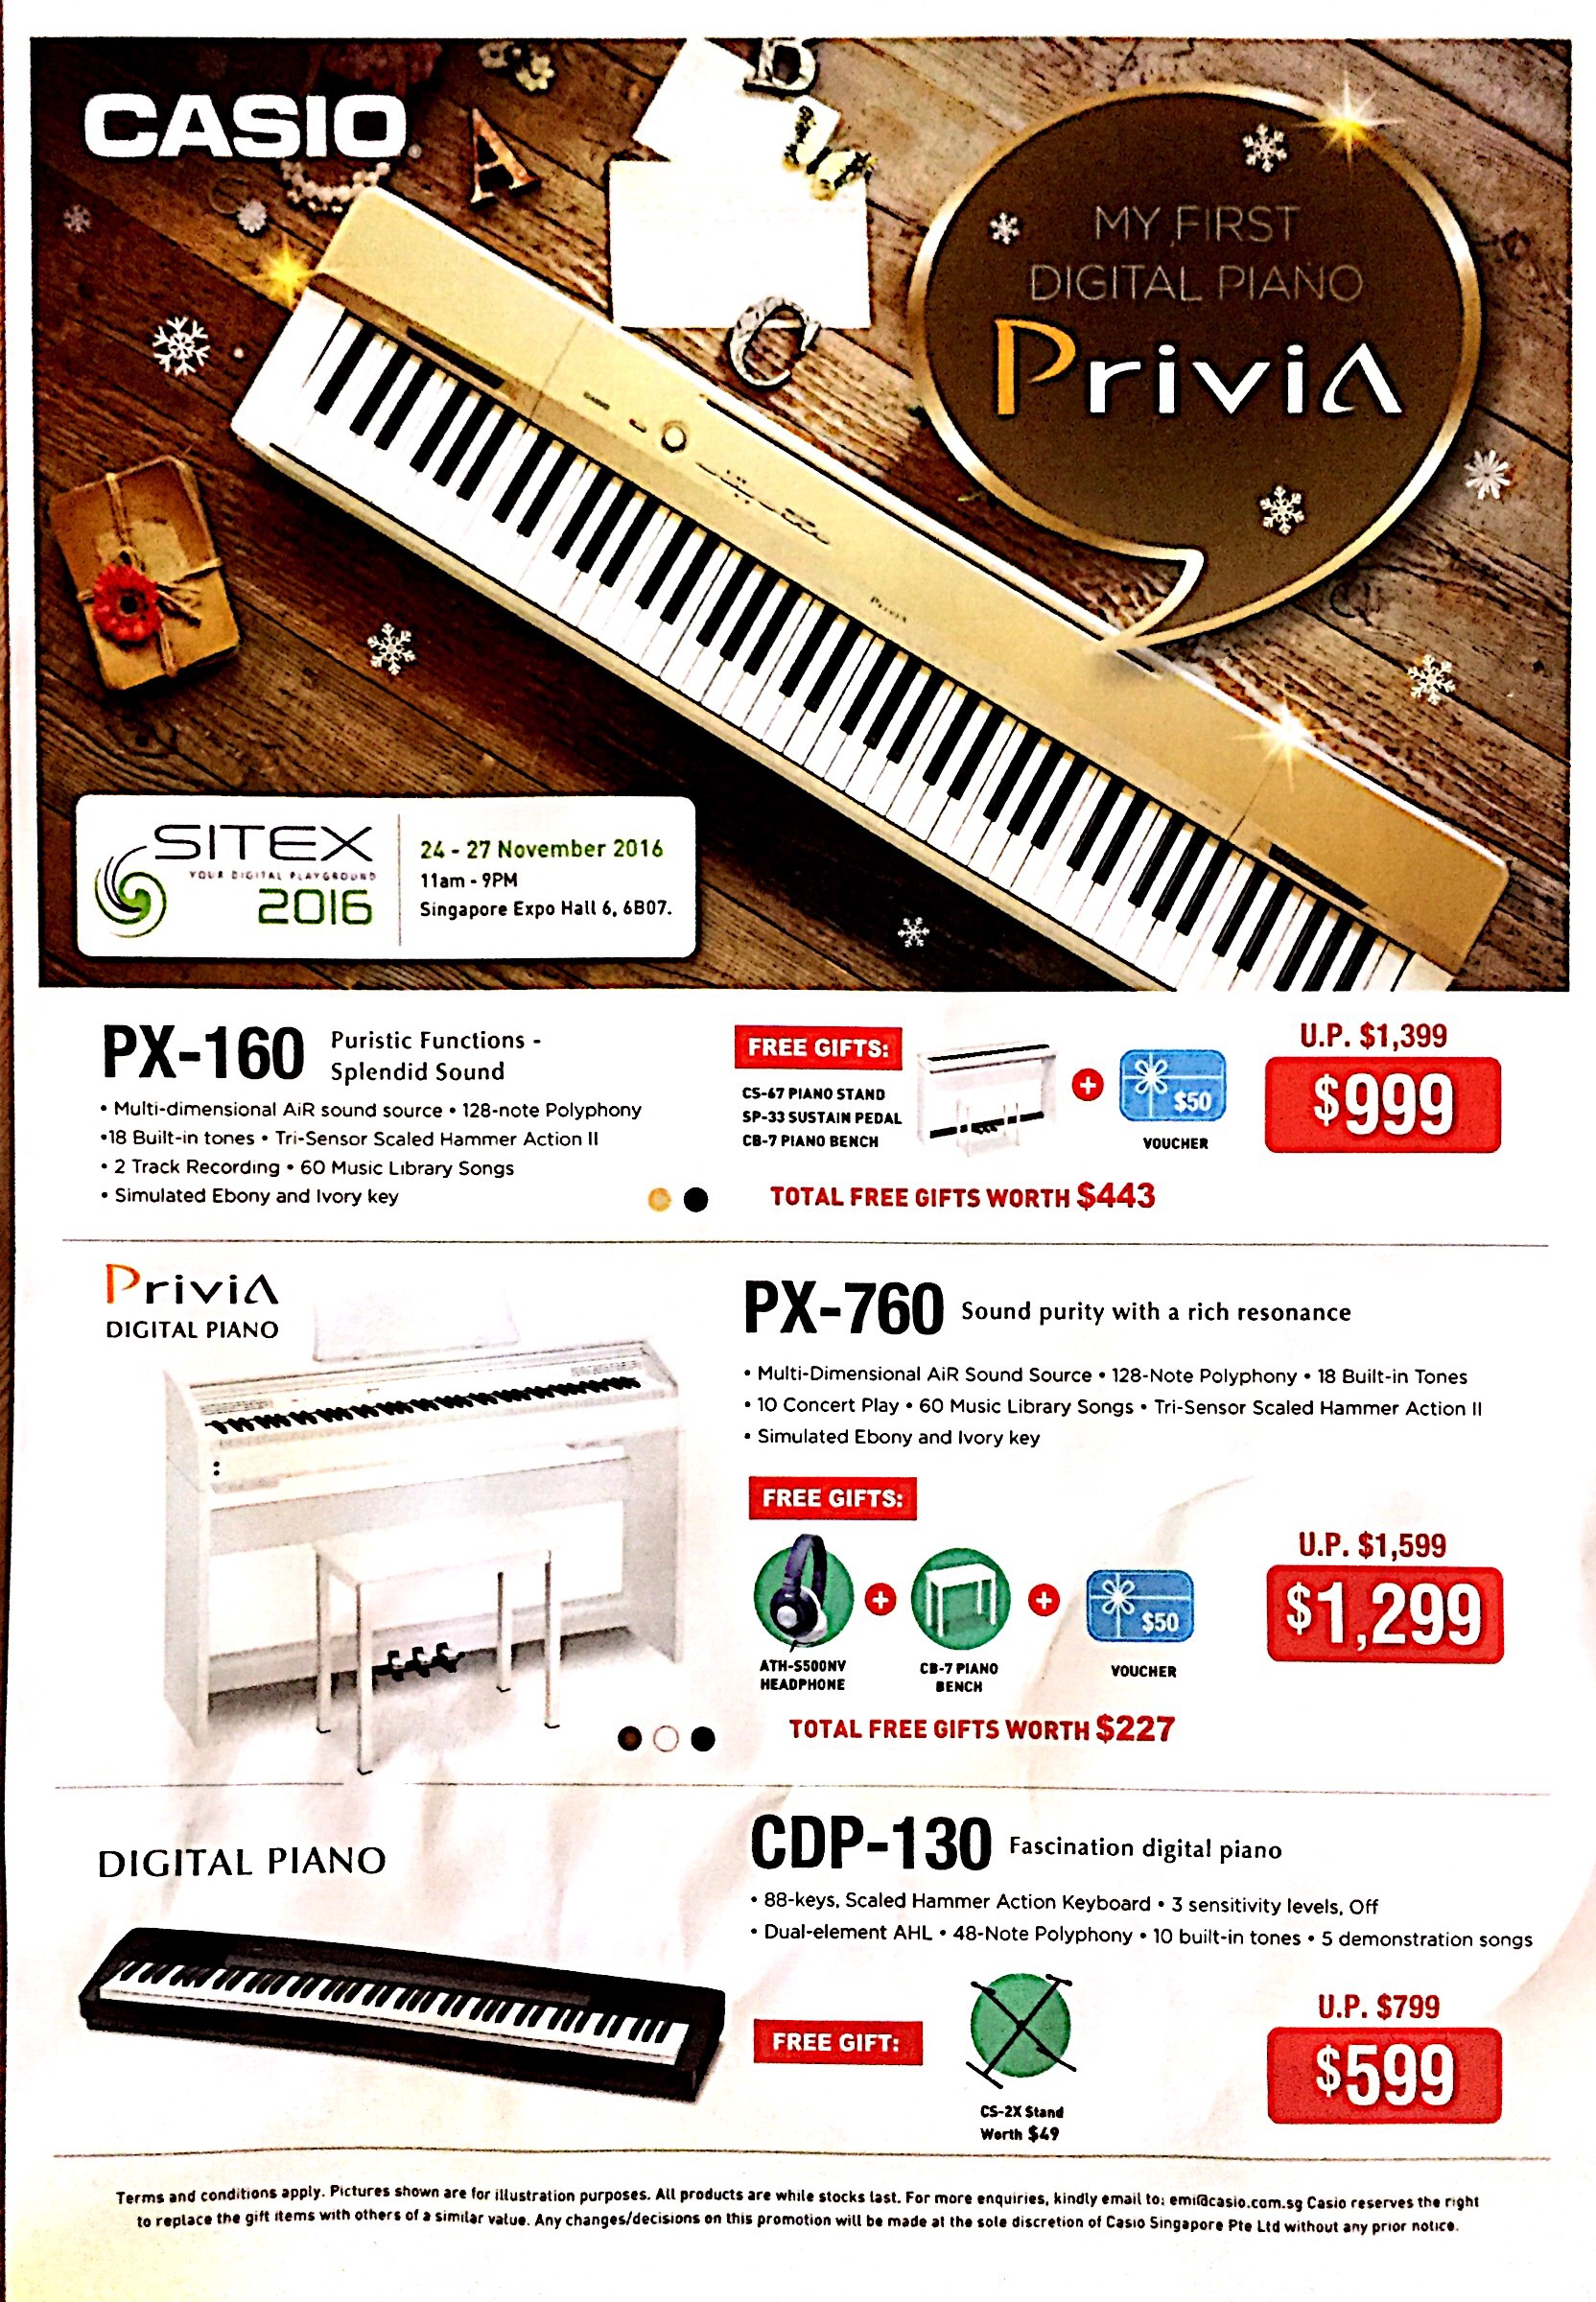 Casio Digital Piano Release Date : casio digital piano best denki sitex 2016 img 2023 adrian video image ~ Hamham.info Haus und Dekorationen